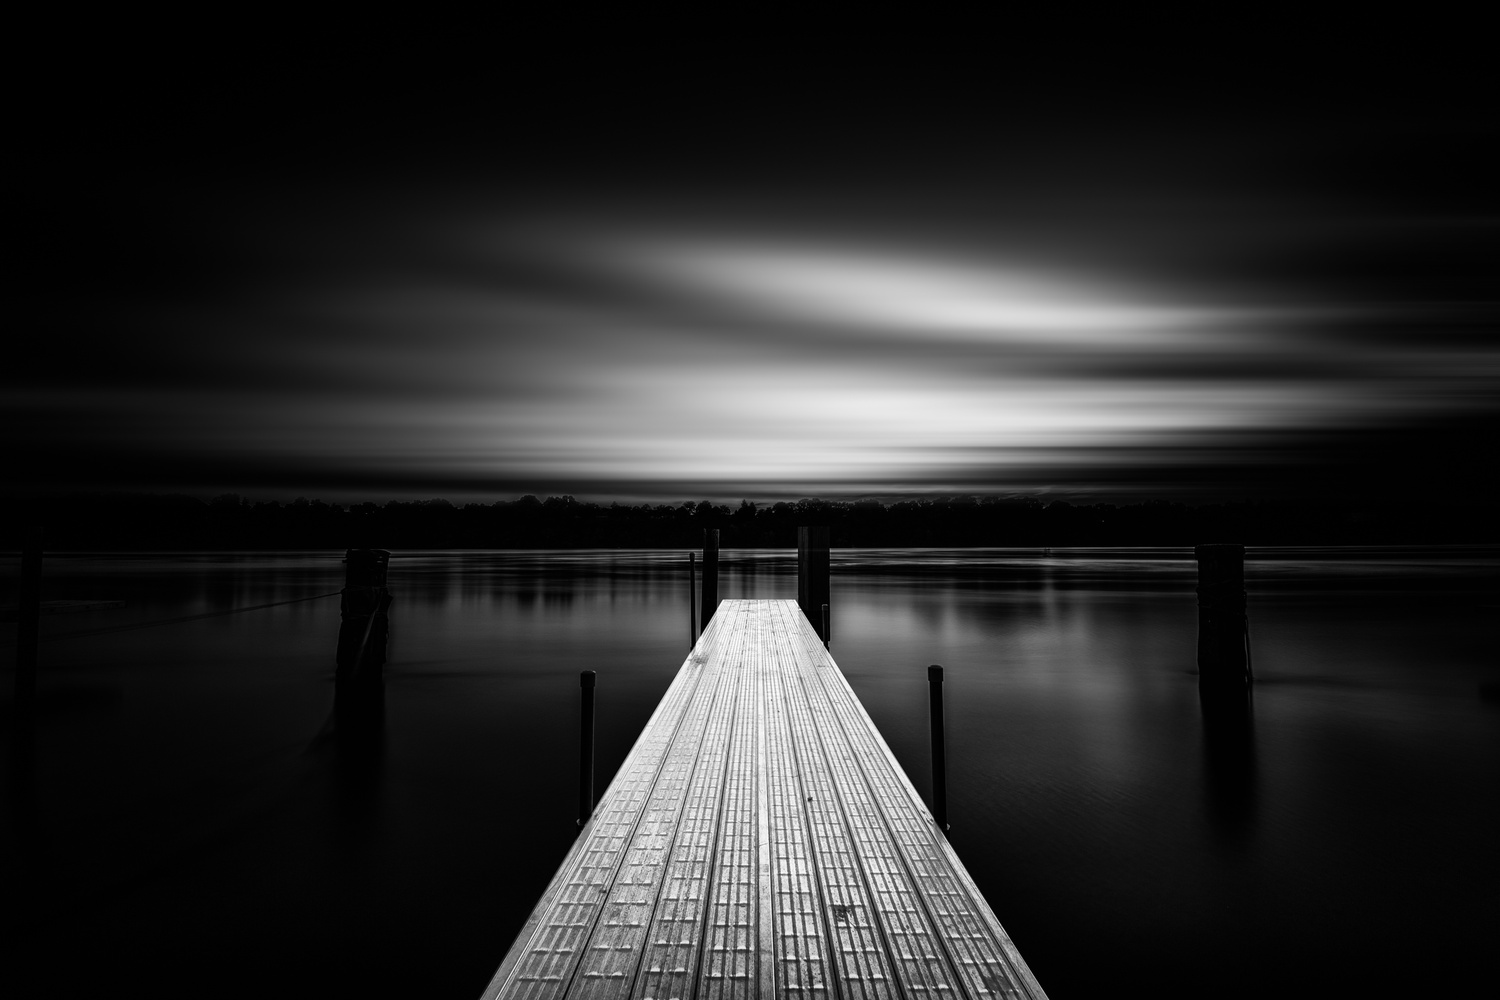 Learning to See in Monochrome by Michael B. Stuart